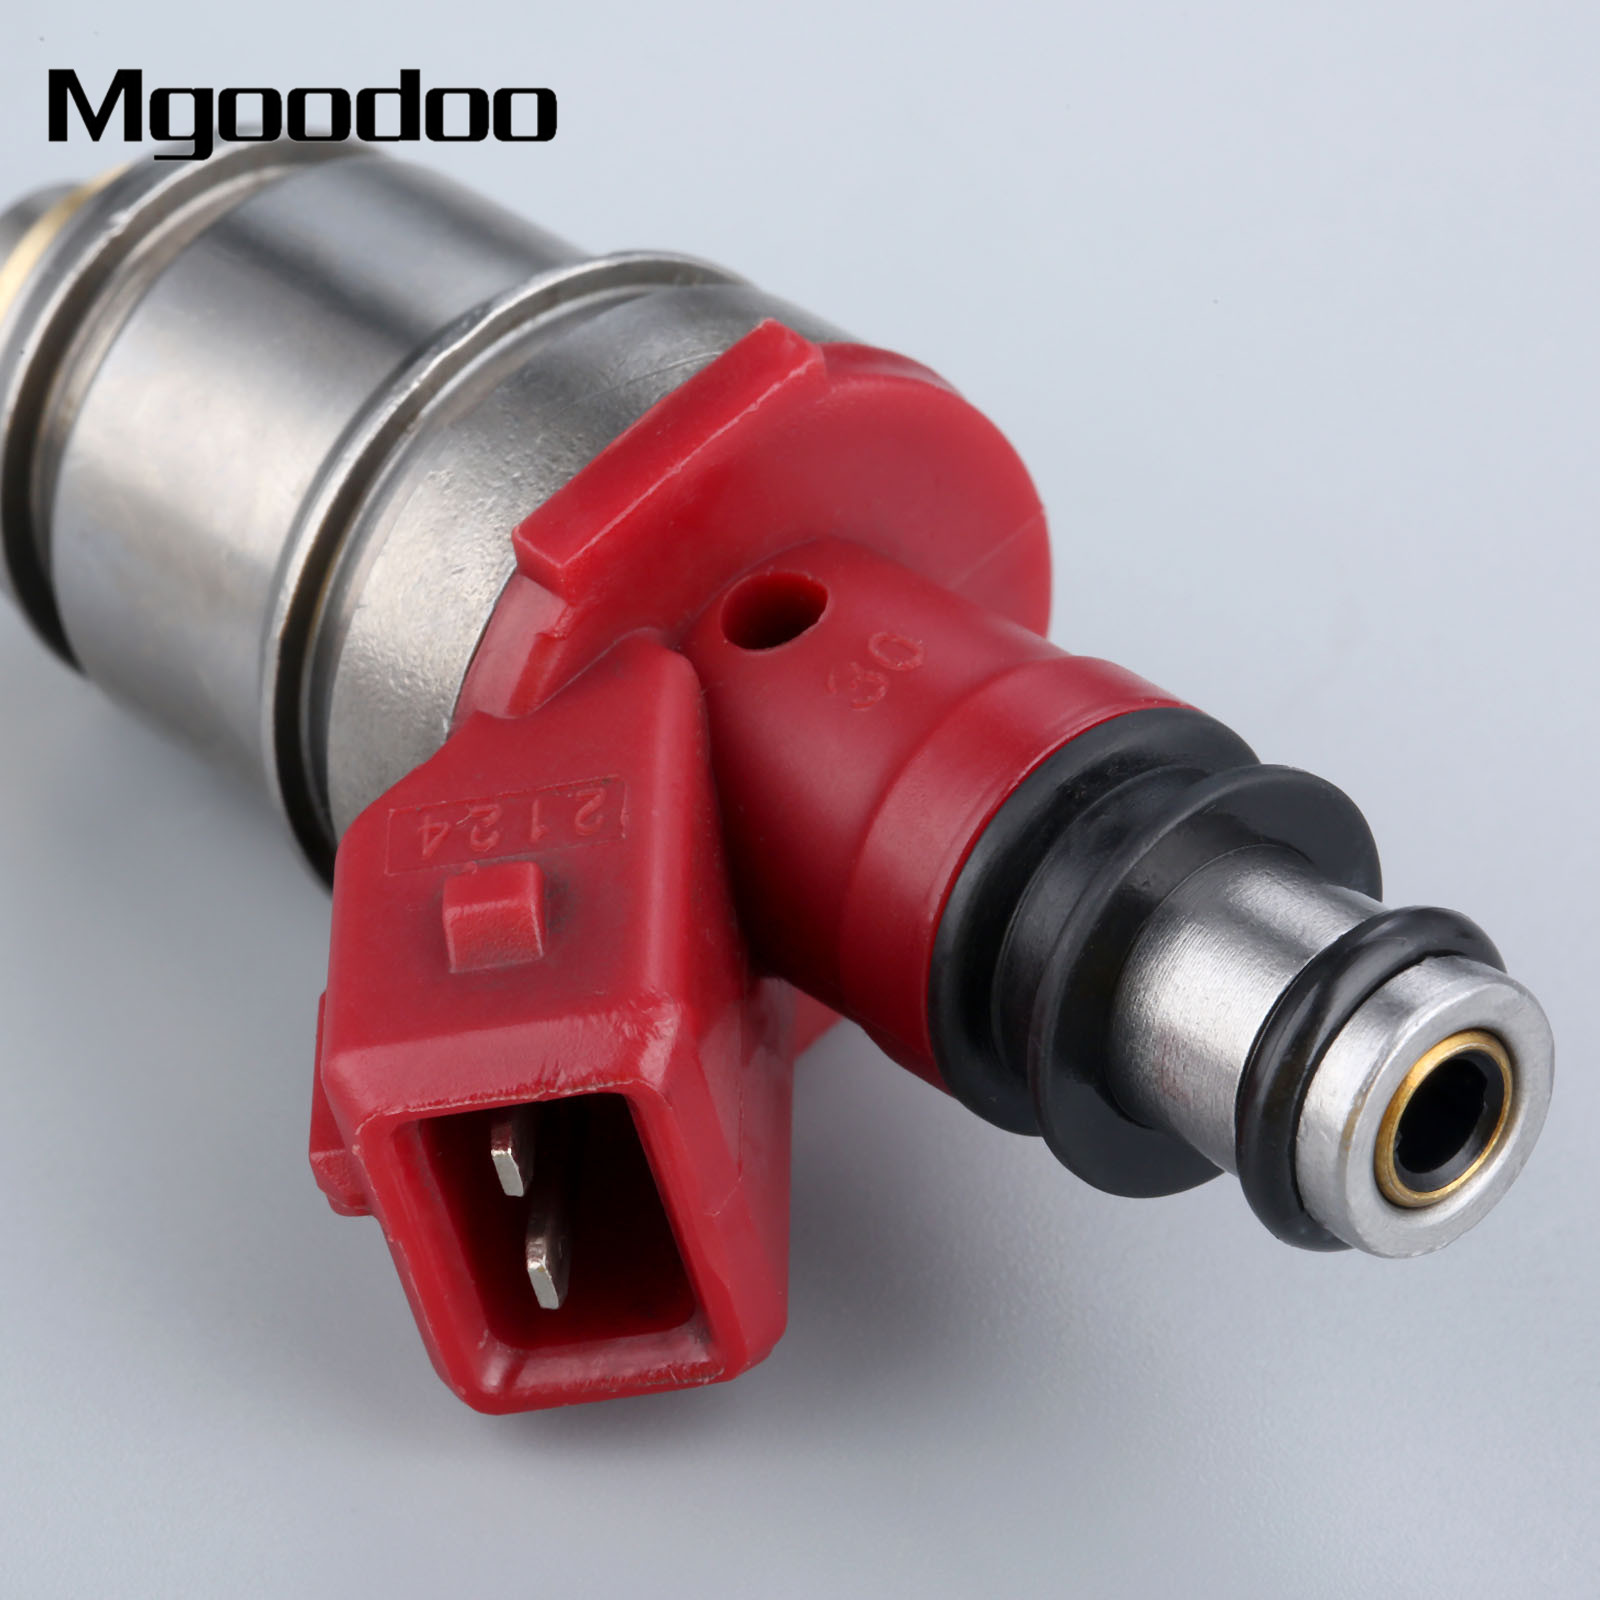 Mgoodoo Fuel Injector Nozzle 16600 86G01 1660086G01 16600 86G00 1660086G00 For Nissan Pickup D21 2 4L in Fuel Injector from Automobiles Motorcycles